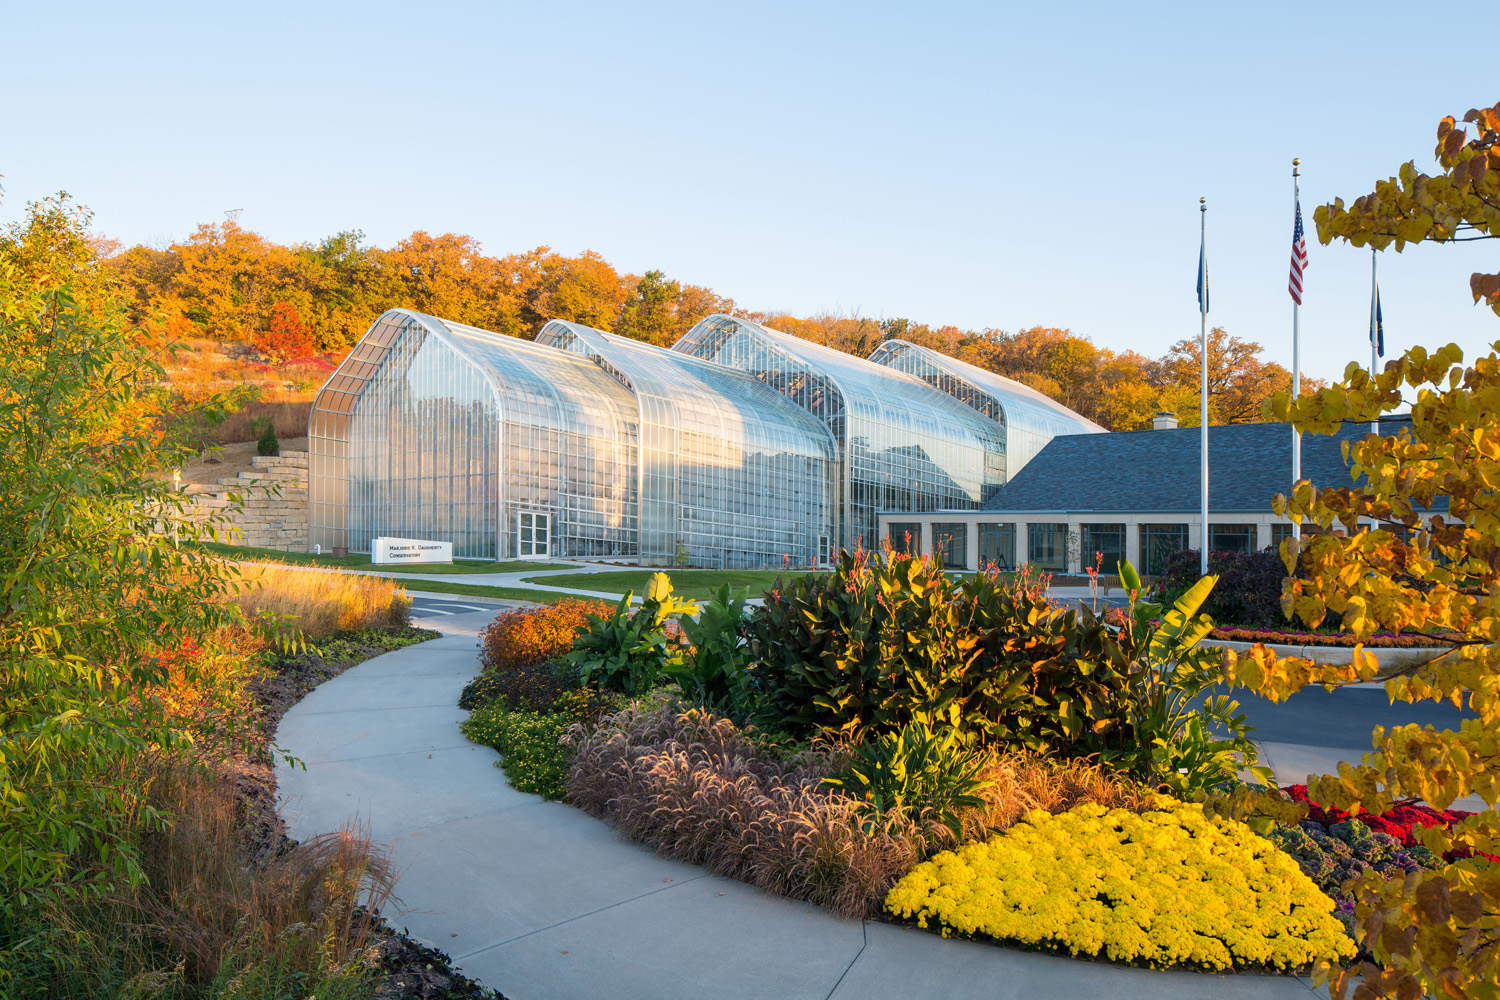 Image of Lauritzen Gardens Visitor and Education Center and the Marjorie K. Daugherty Conservatory